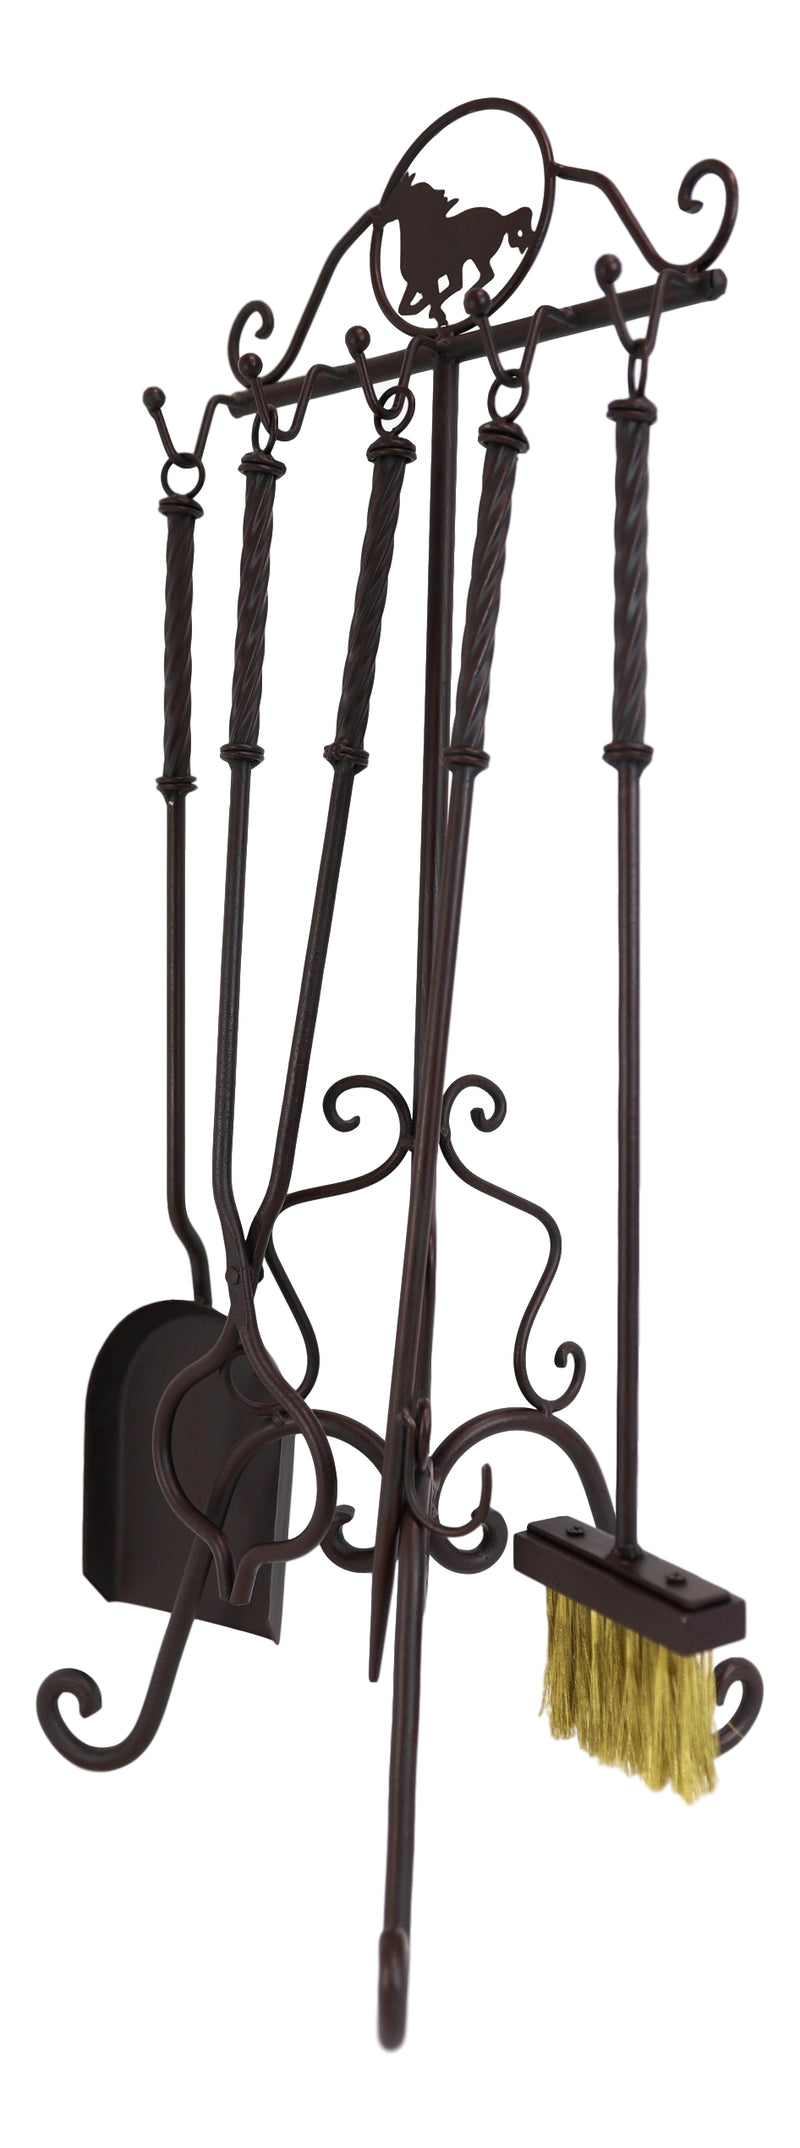 Wrought Iron Metal Western Rustic Galloping Equine Horse Fireplace Tool Kit 5 Piece Set Including Display Holder Stand Home Decor Living Room Patio Accent